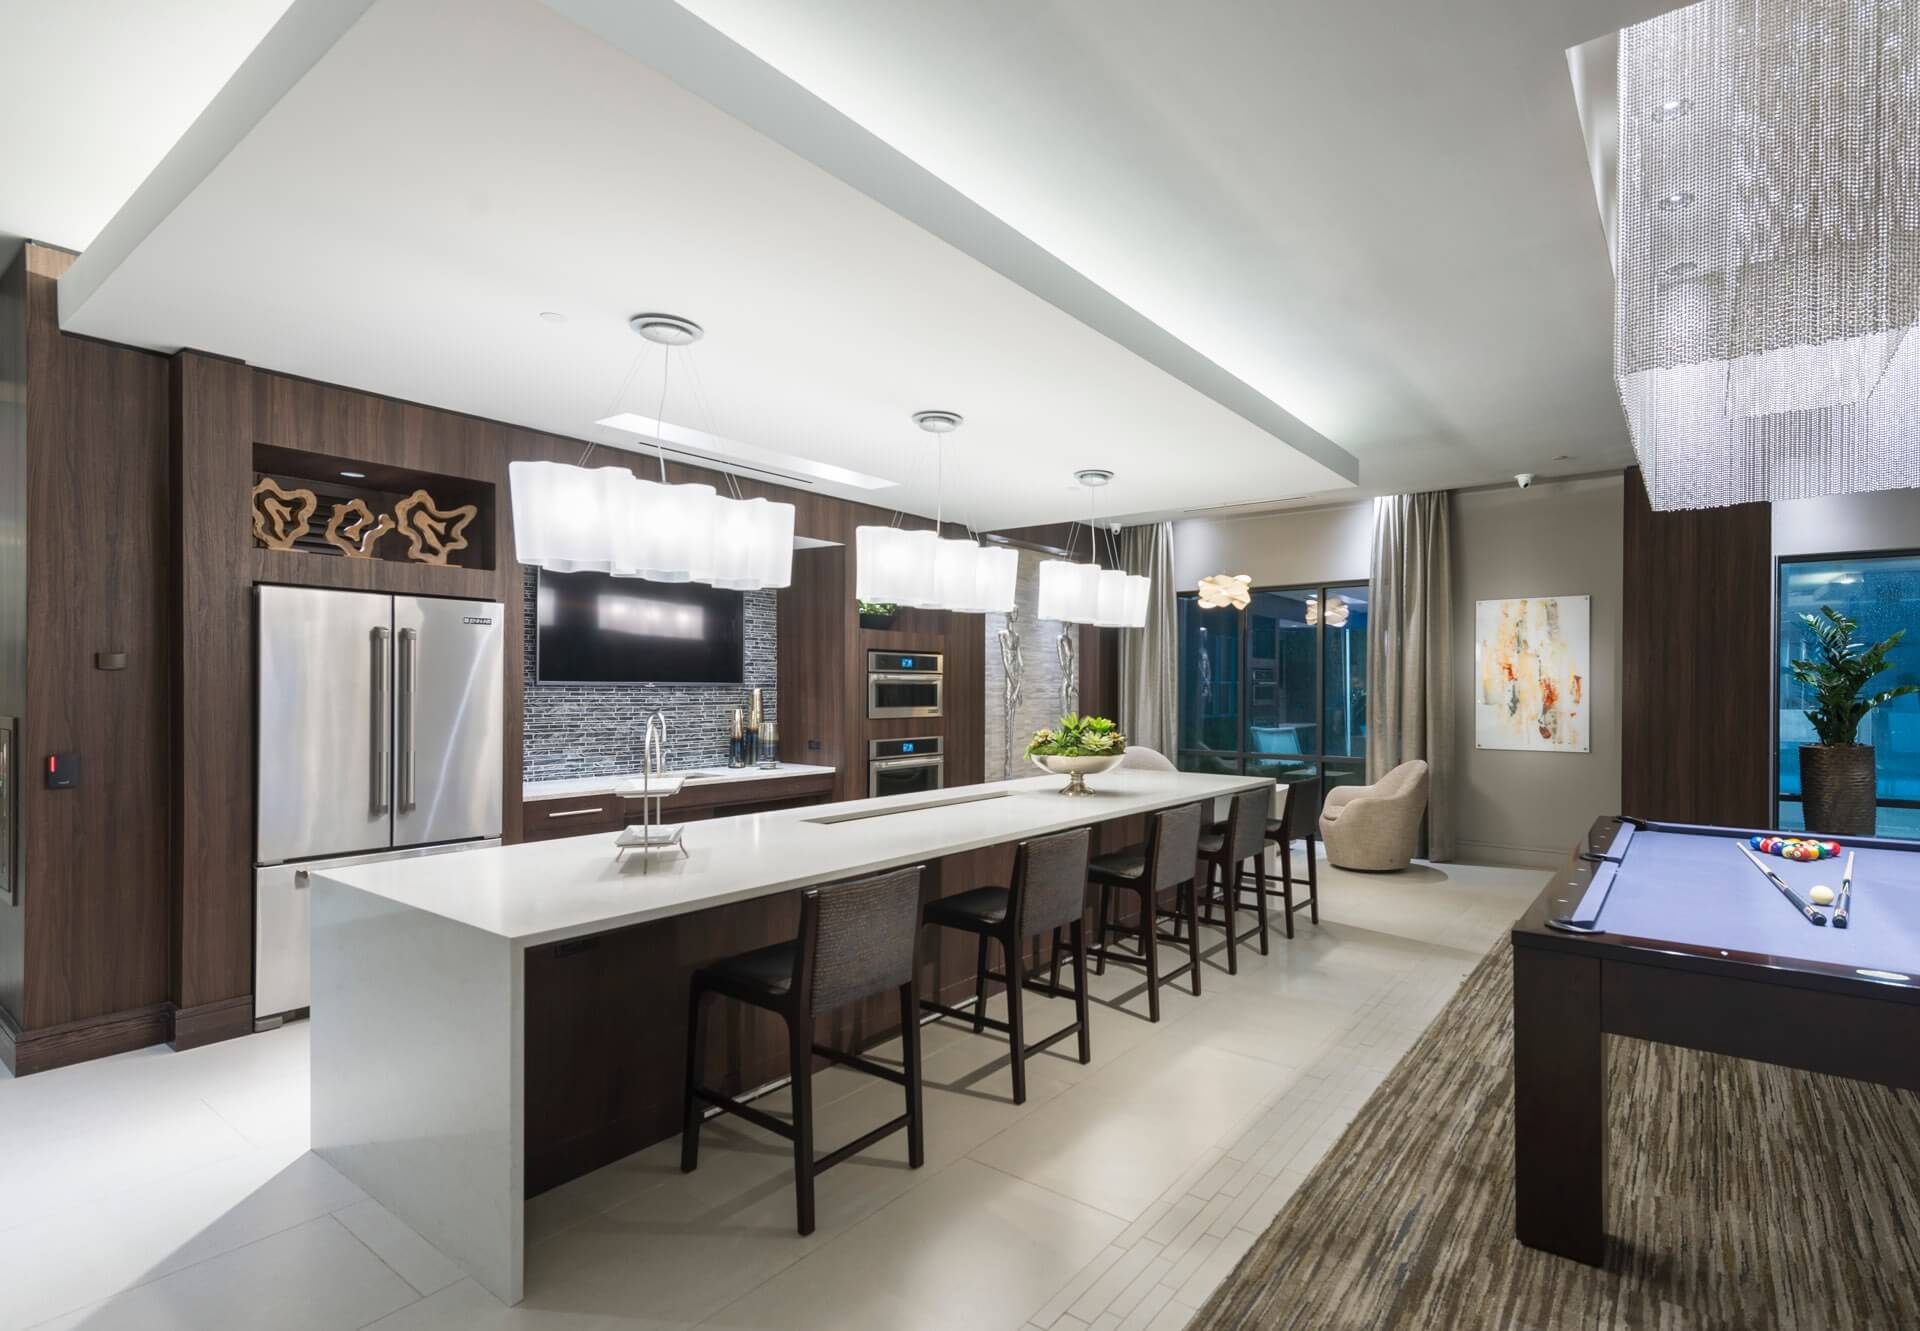 Entertain your guests in our full-size chef's kitchen